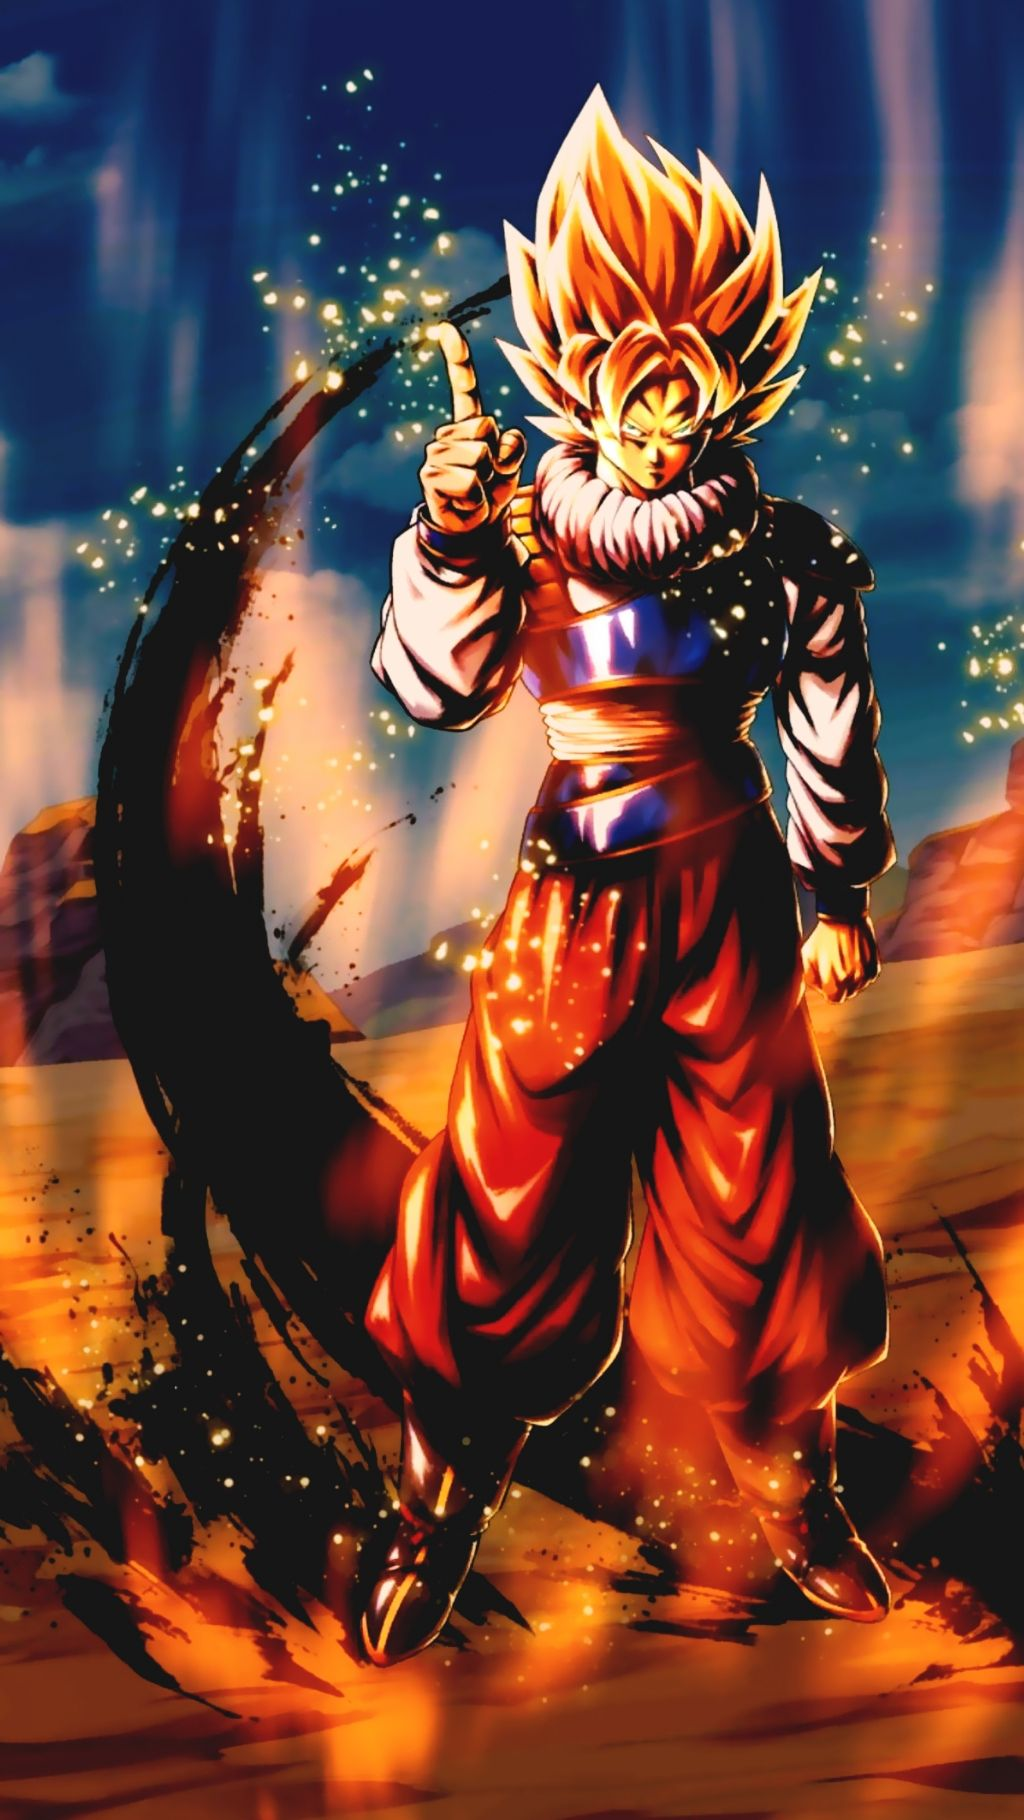 20 4k Wallpapers Of Dbz And Super For Phones In 2020 Anime Dragon Ball Super Dragon Ball Art Dragon Ball Artwork